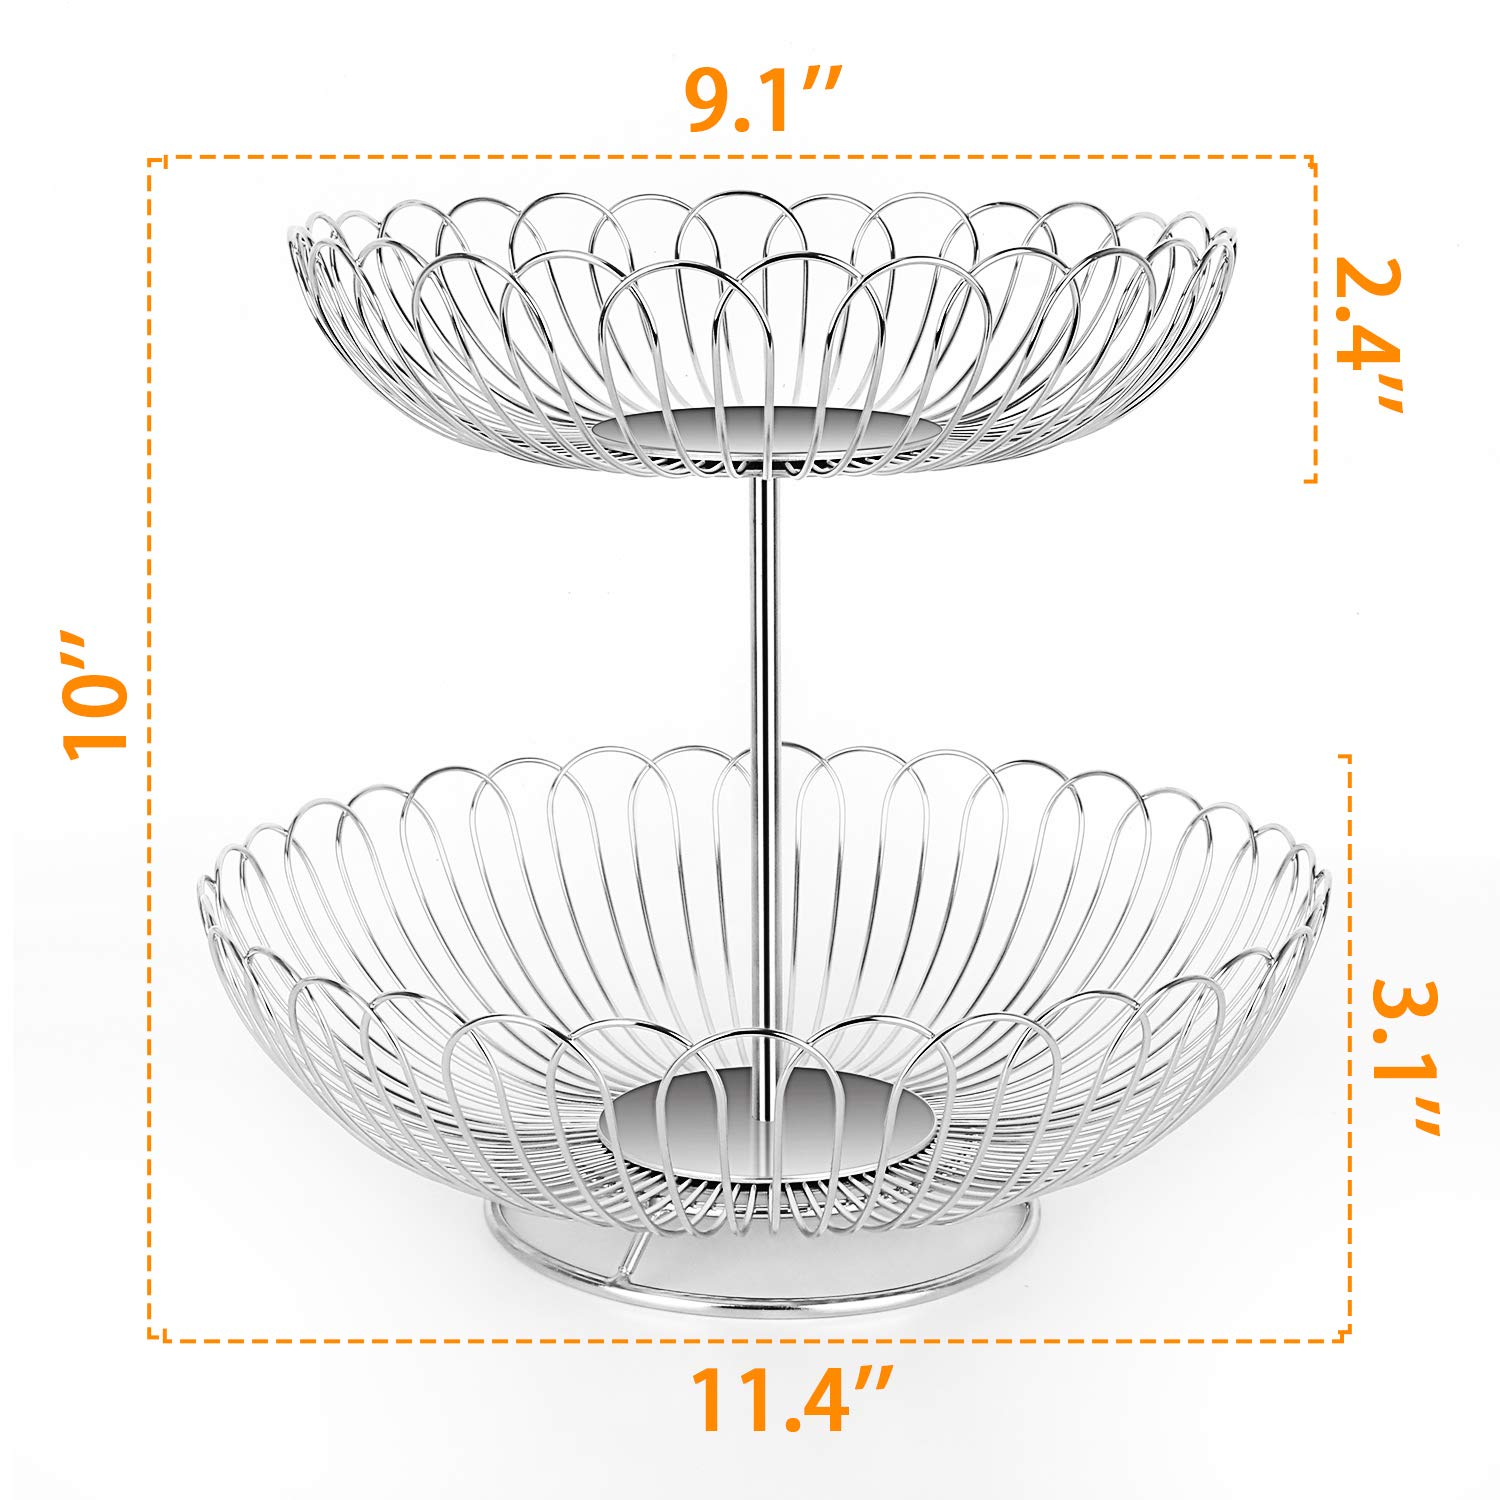 Stainless Steel 2 Tier Wire Fruit Basket Bowl for Kitchen Counter Stand with Bread by LANEJOY (Image #4)